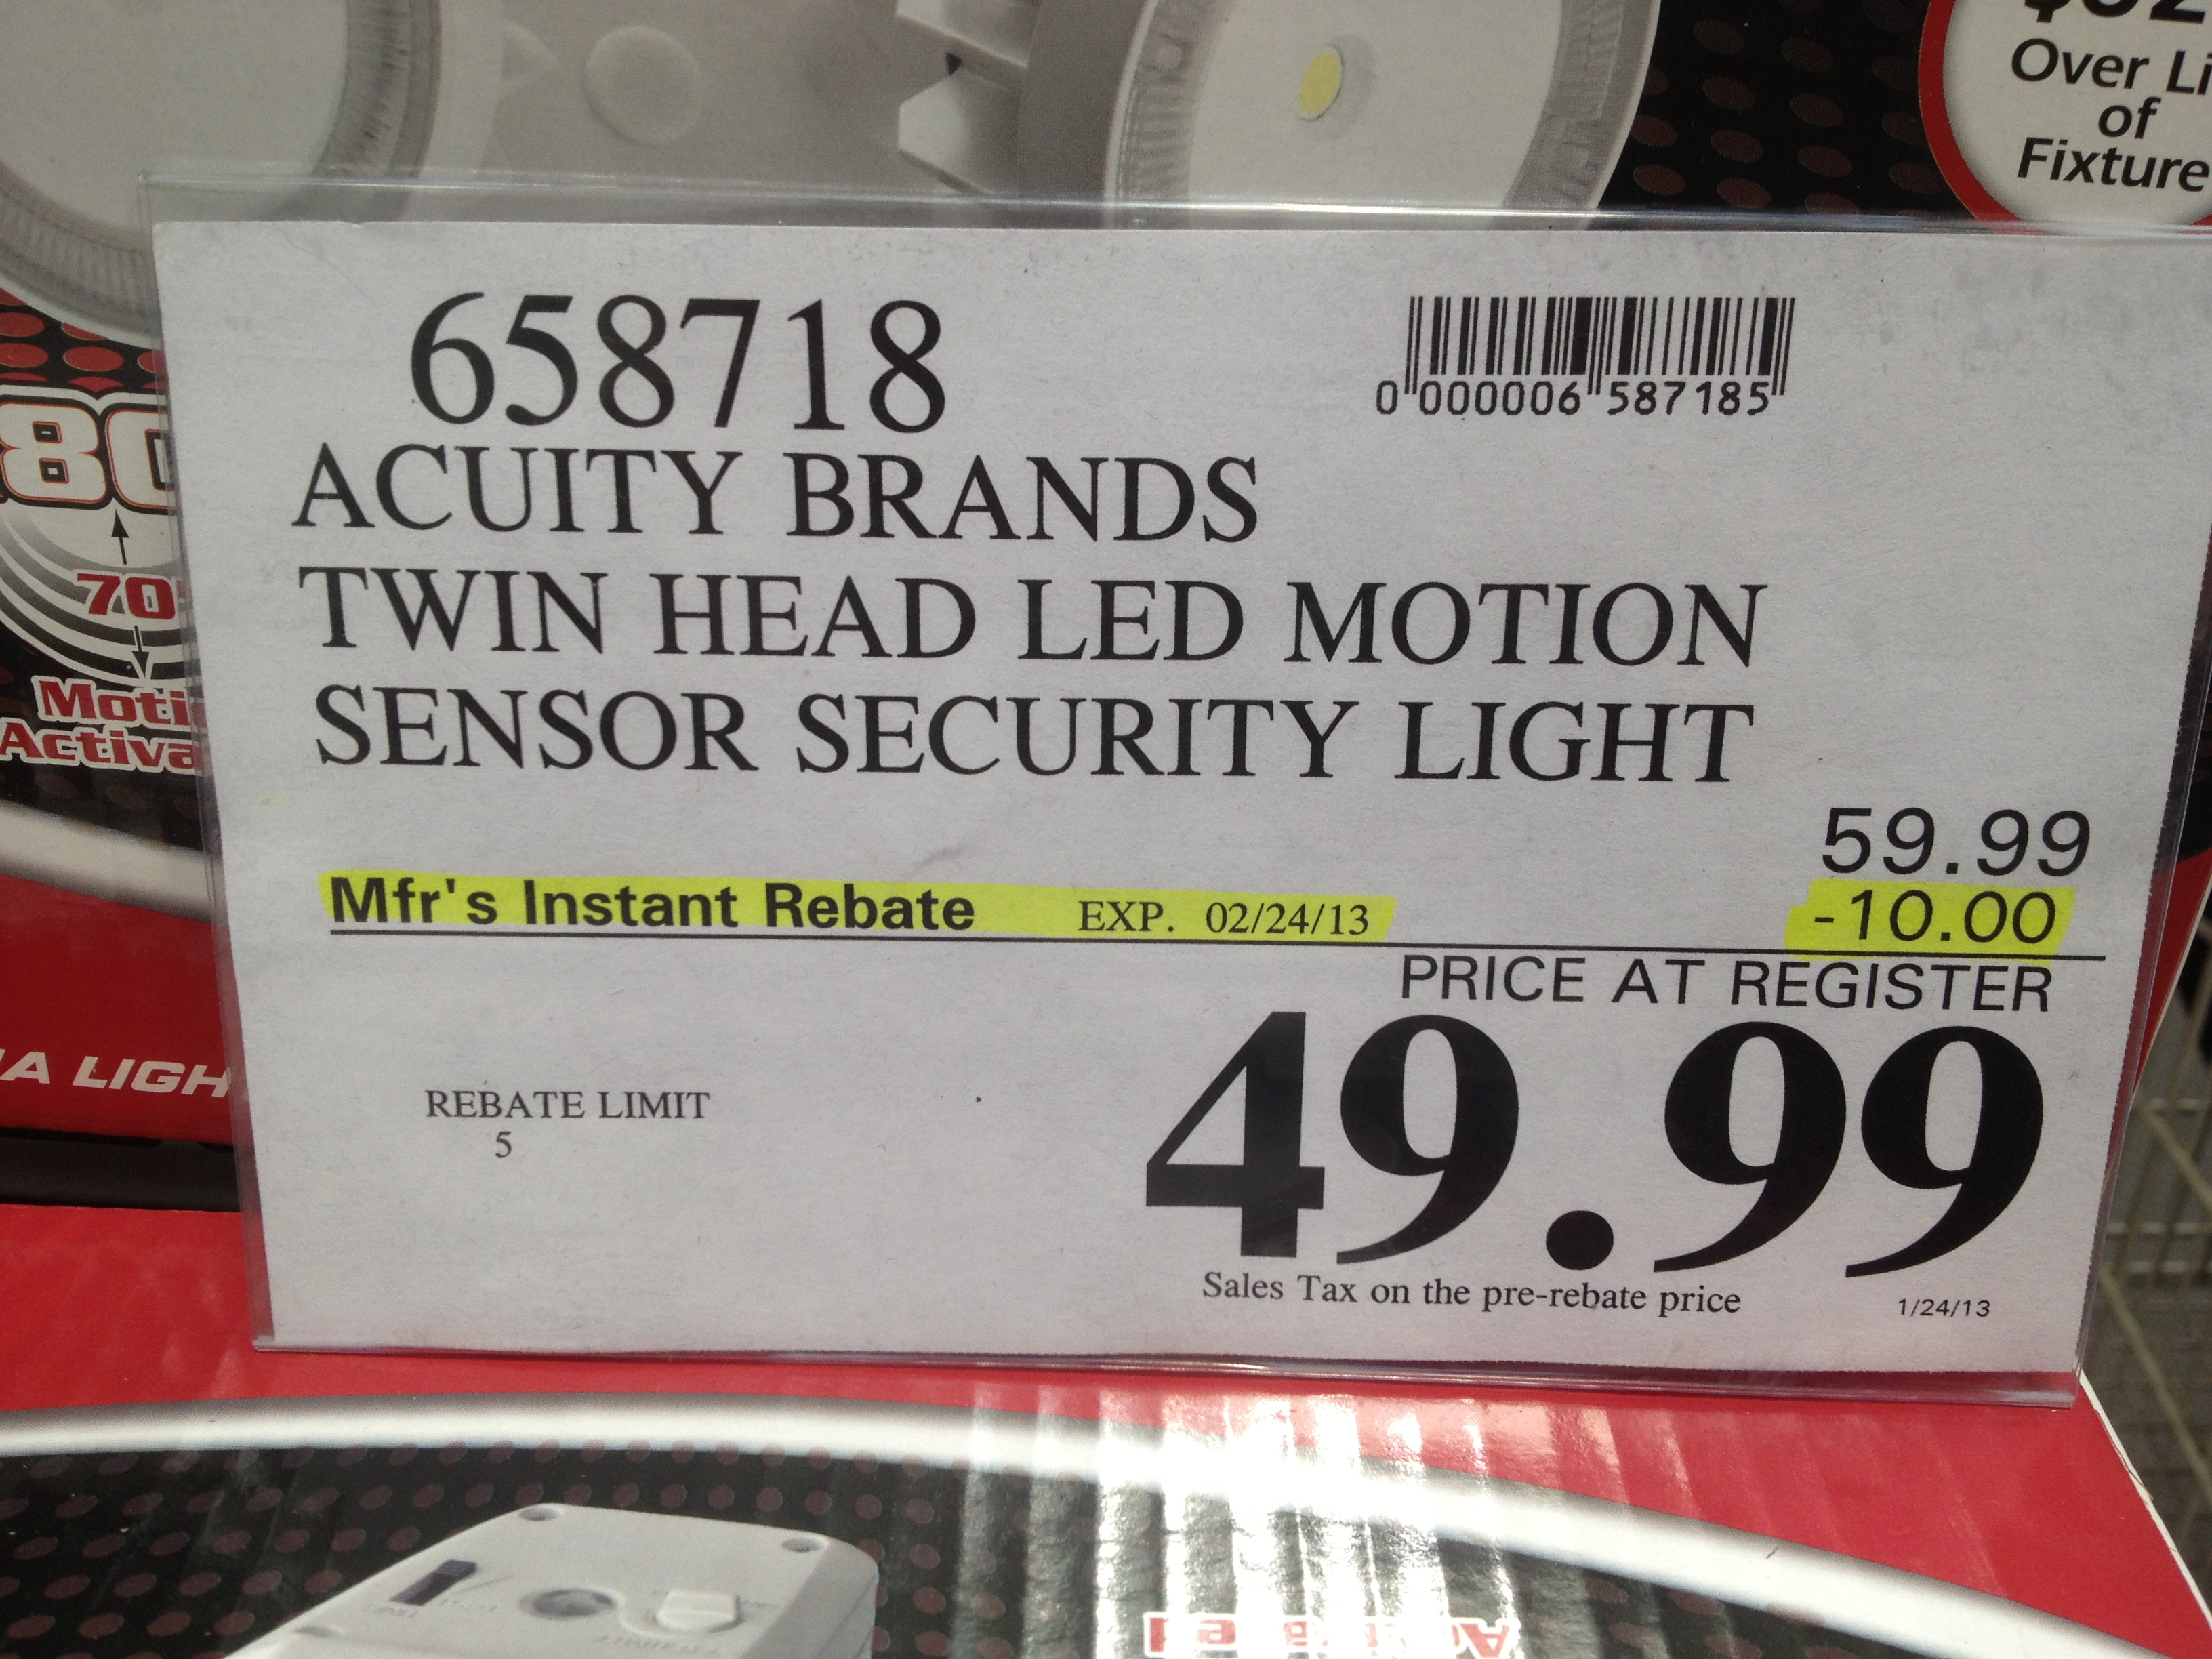 Costco - item number 658718 - Acuity Brands Twin Head LED ... on Costco Number id=37257